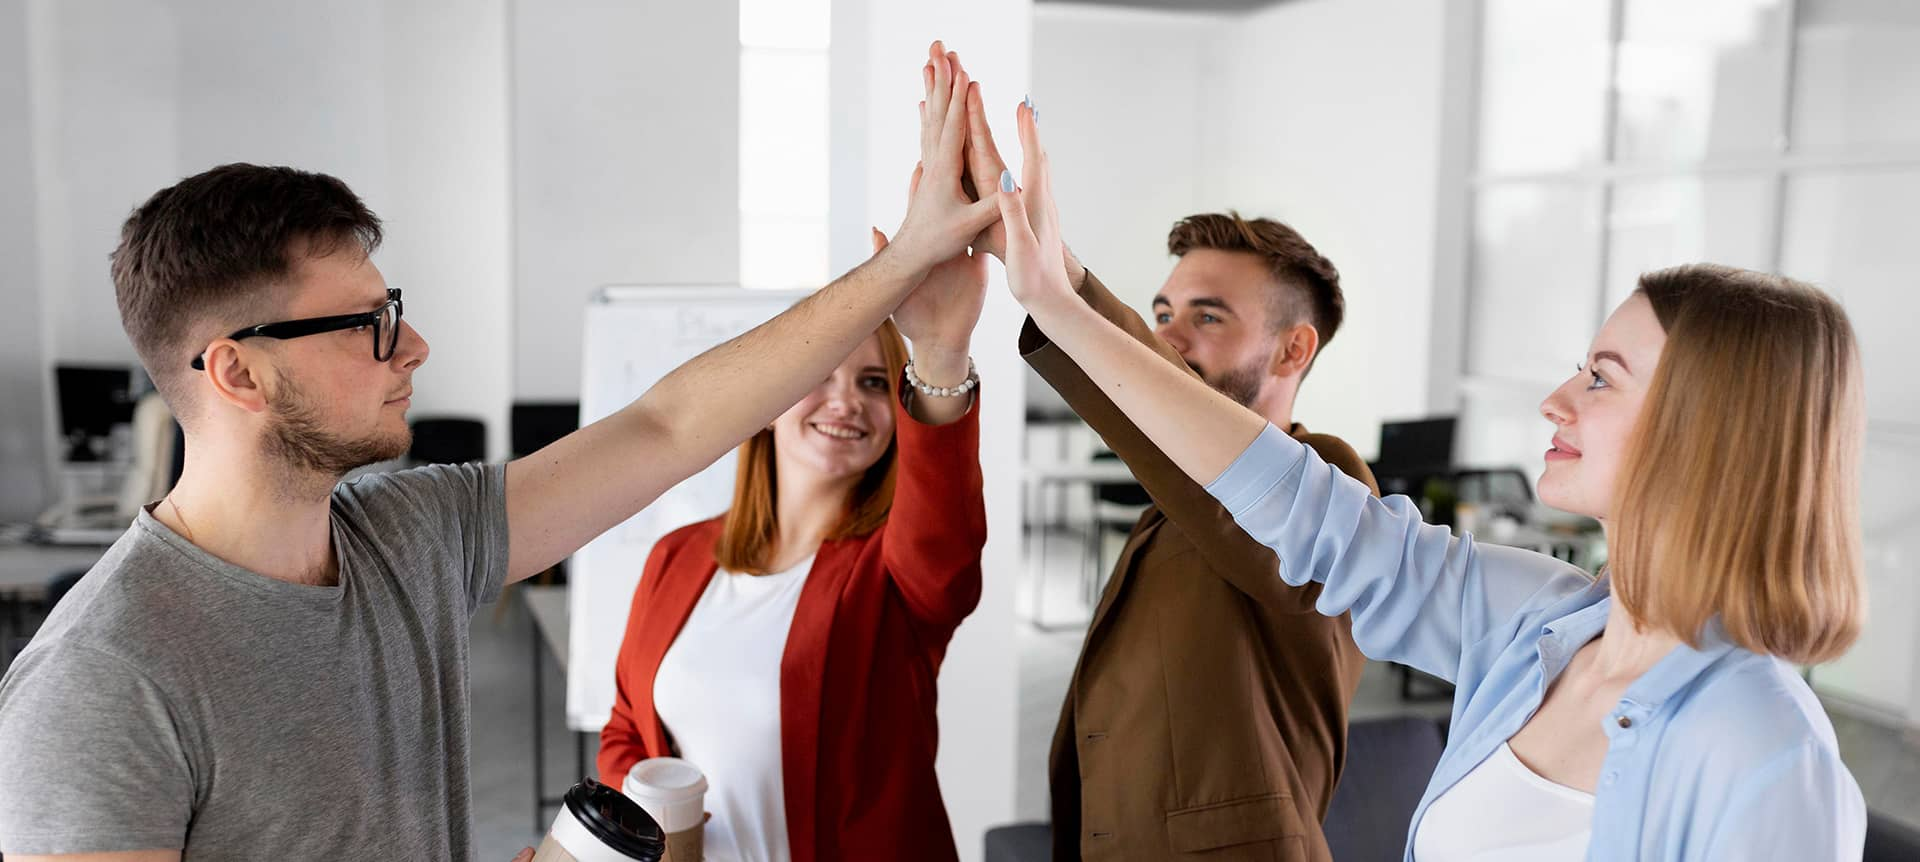 A group of employees high fiving each other